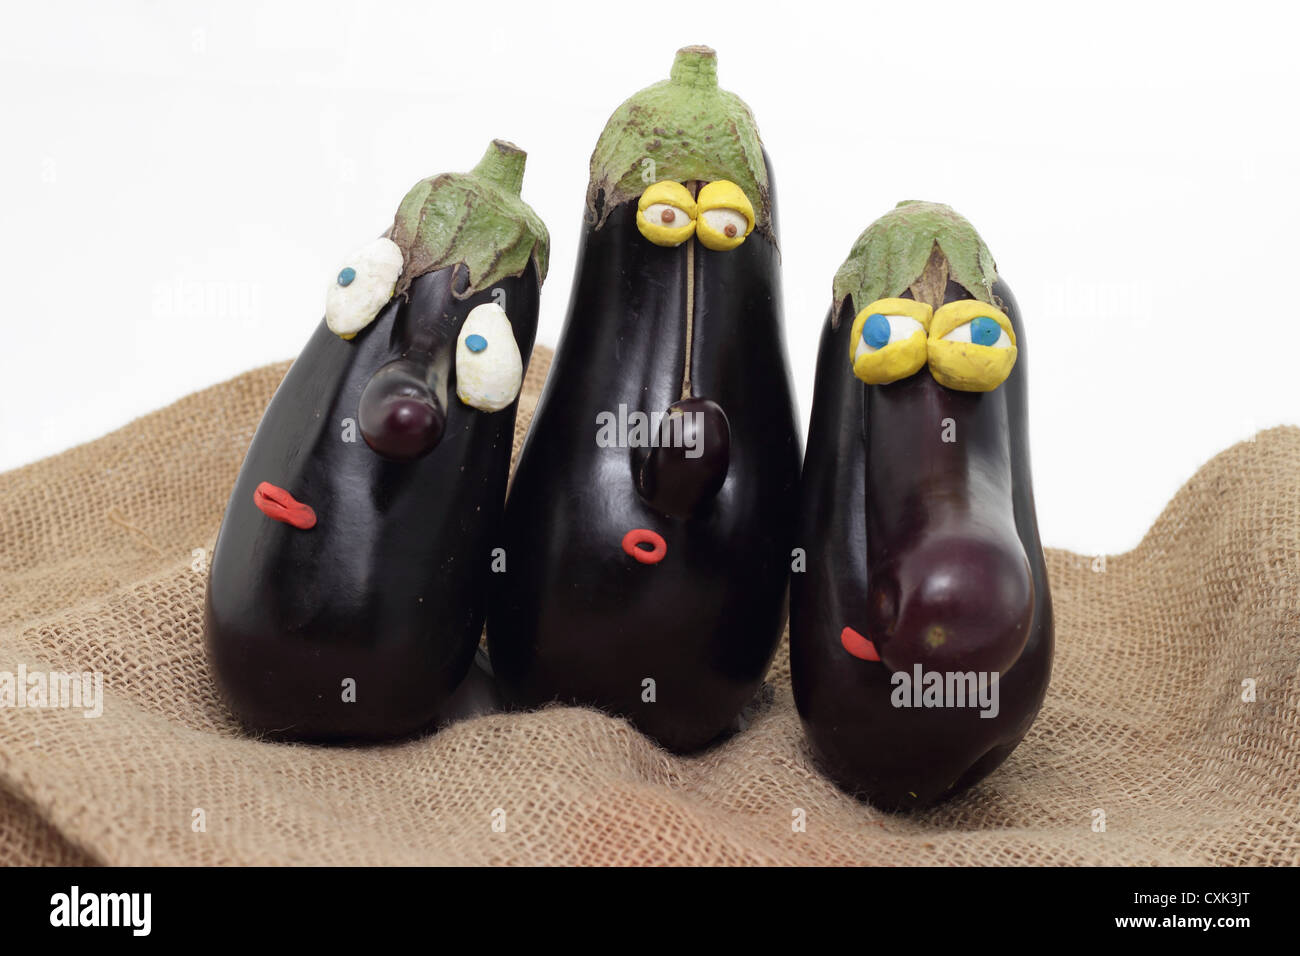 three nosed eggplants with plasticine eyes - Stock Image